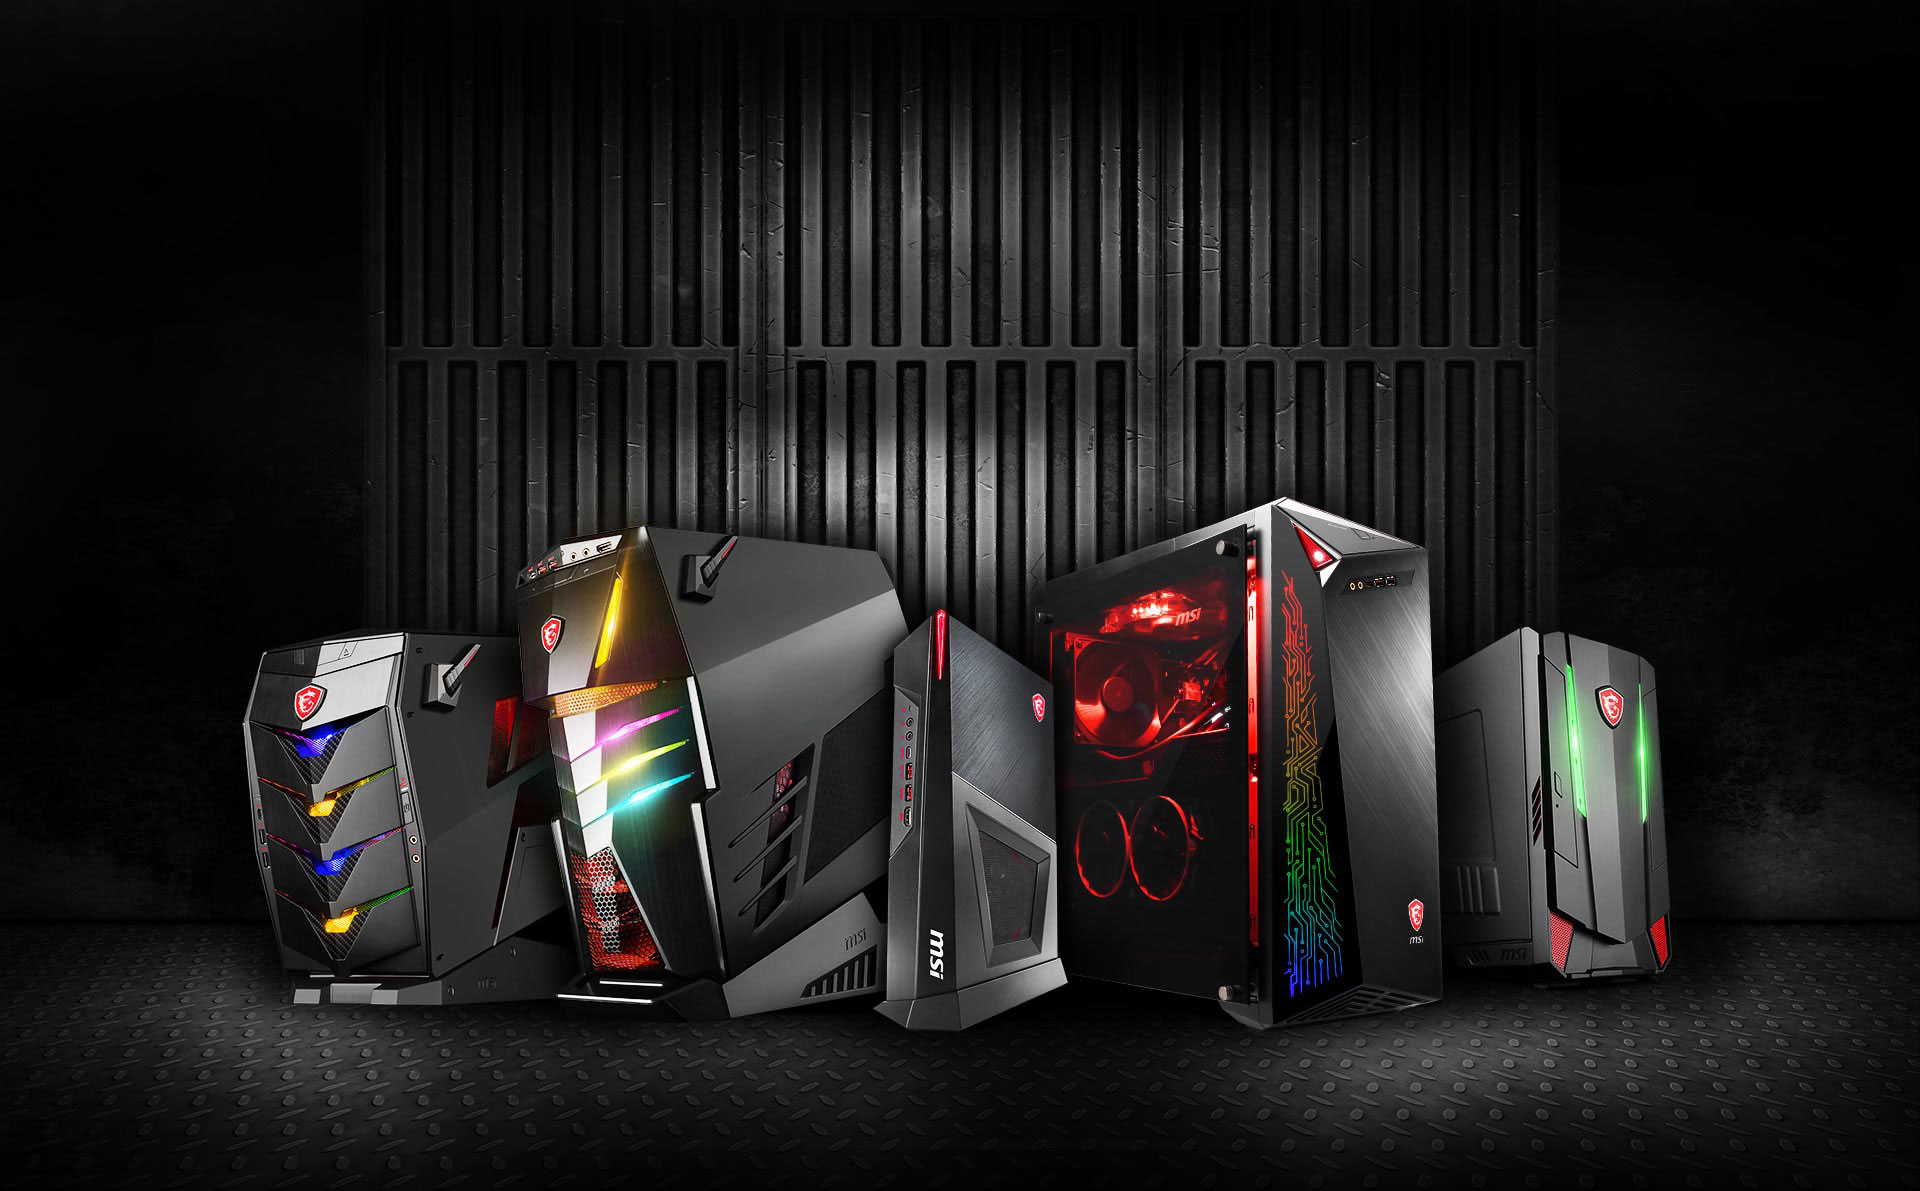 The Best Gaming Pc 2019 Gaming Desktop Msi